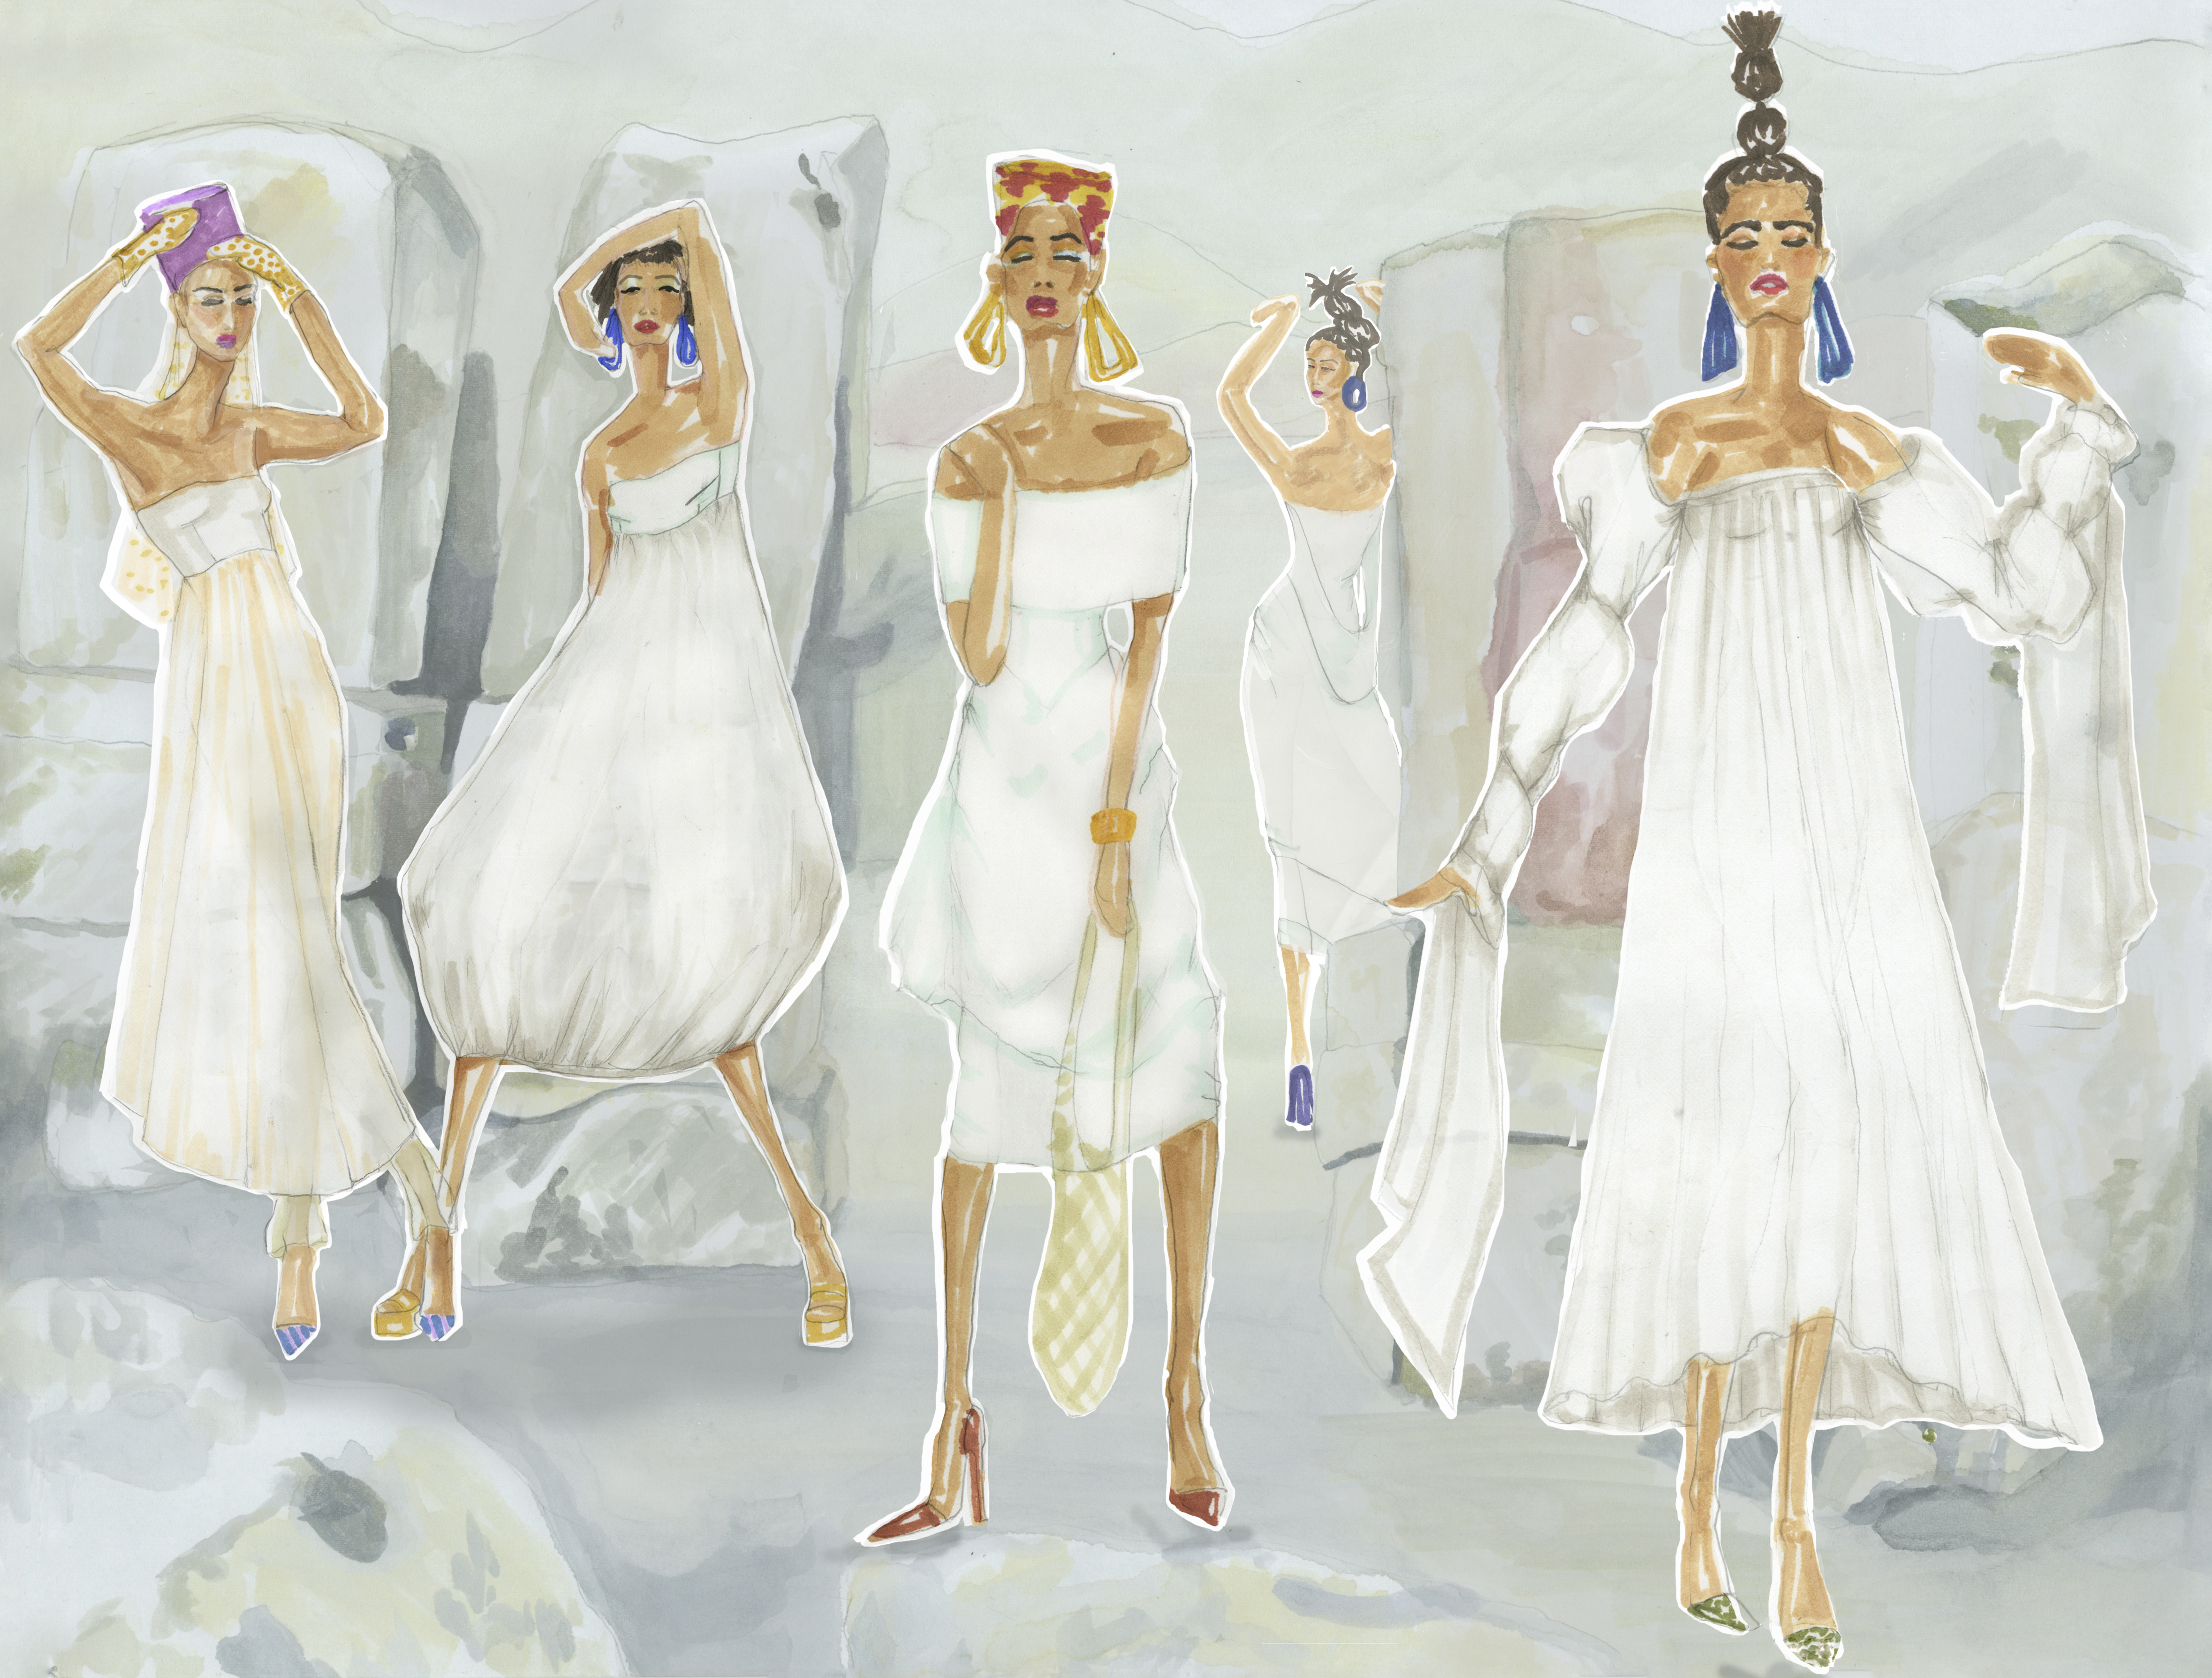 Cultural Project – Fashion Illustration